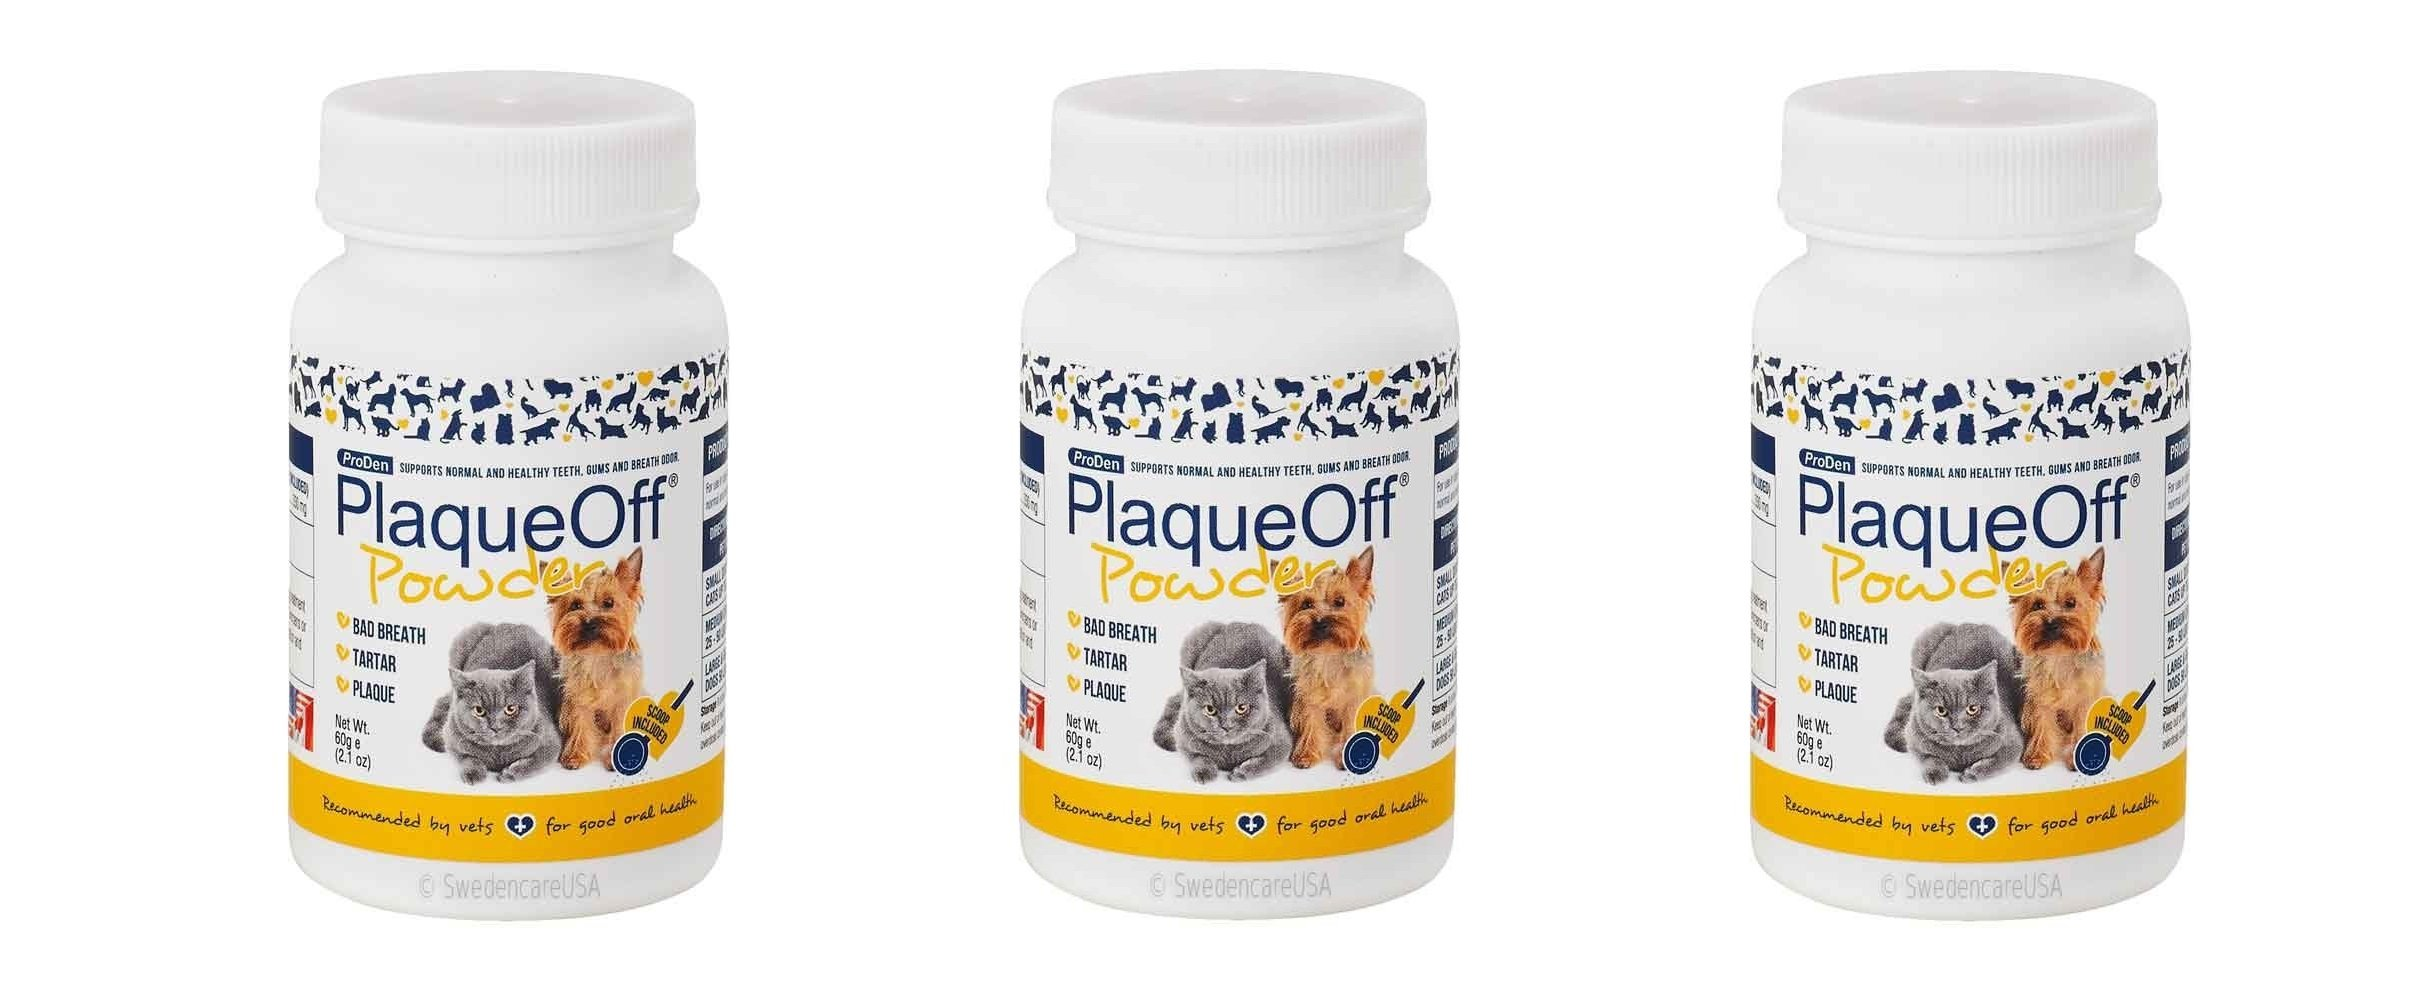 Proden PlaqueOff Dental Care iXYQMn for Dogs and Cats, 60gm (3 Units)